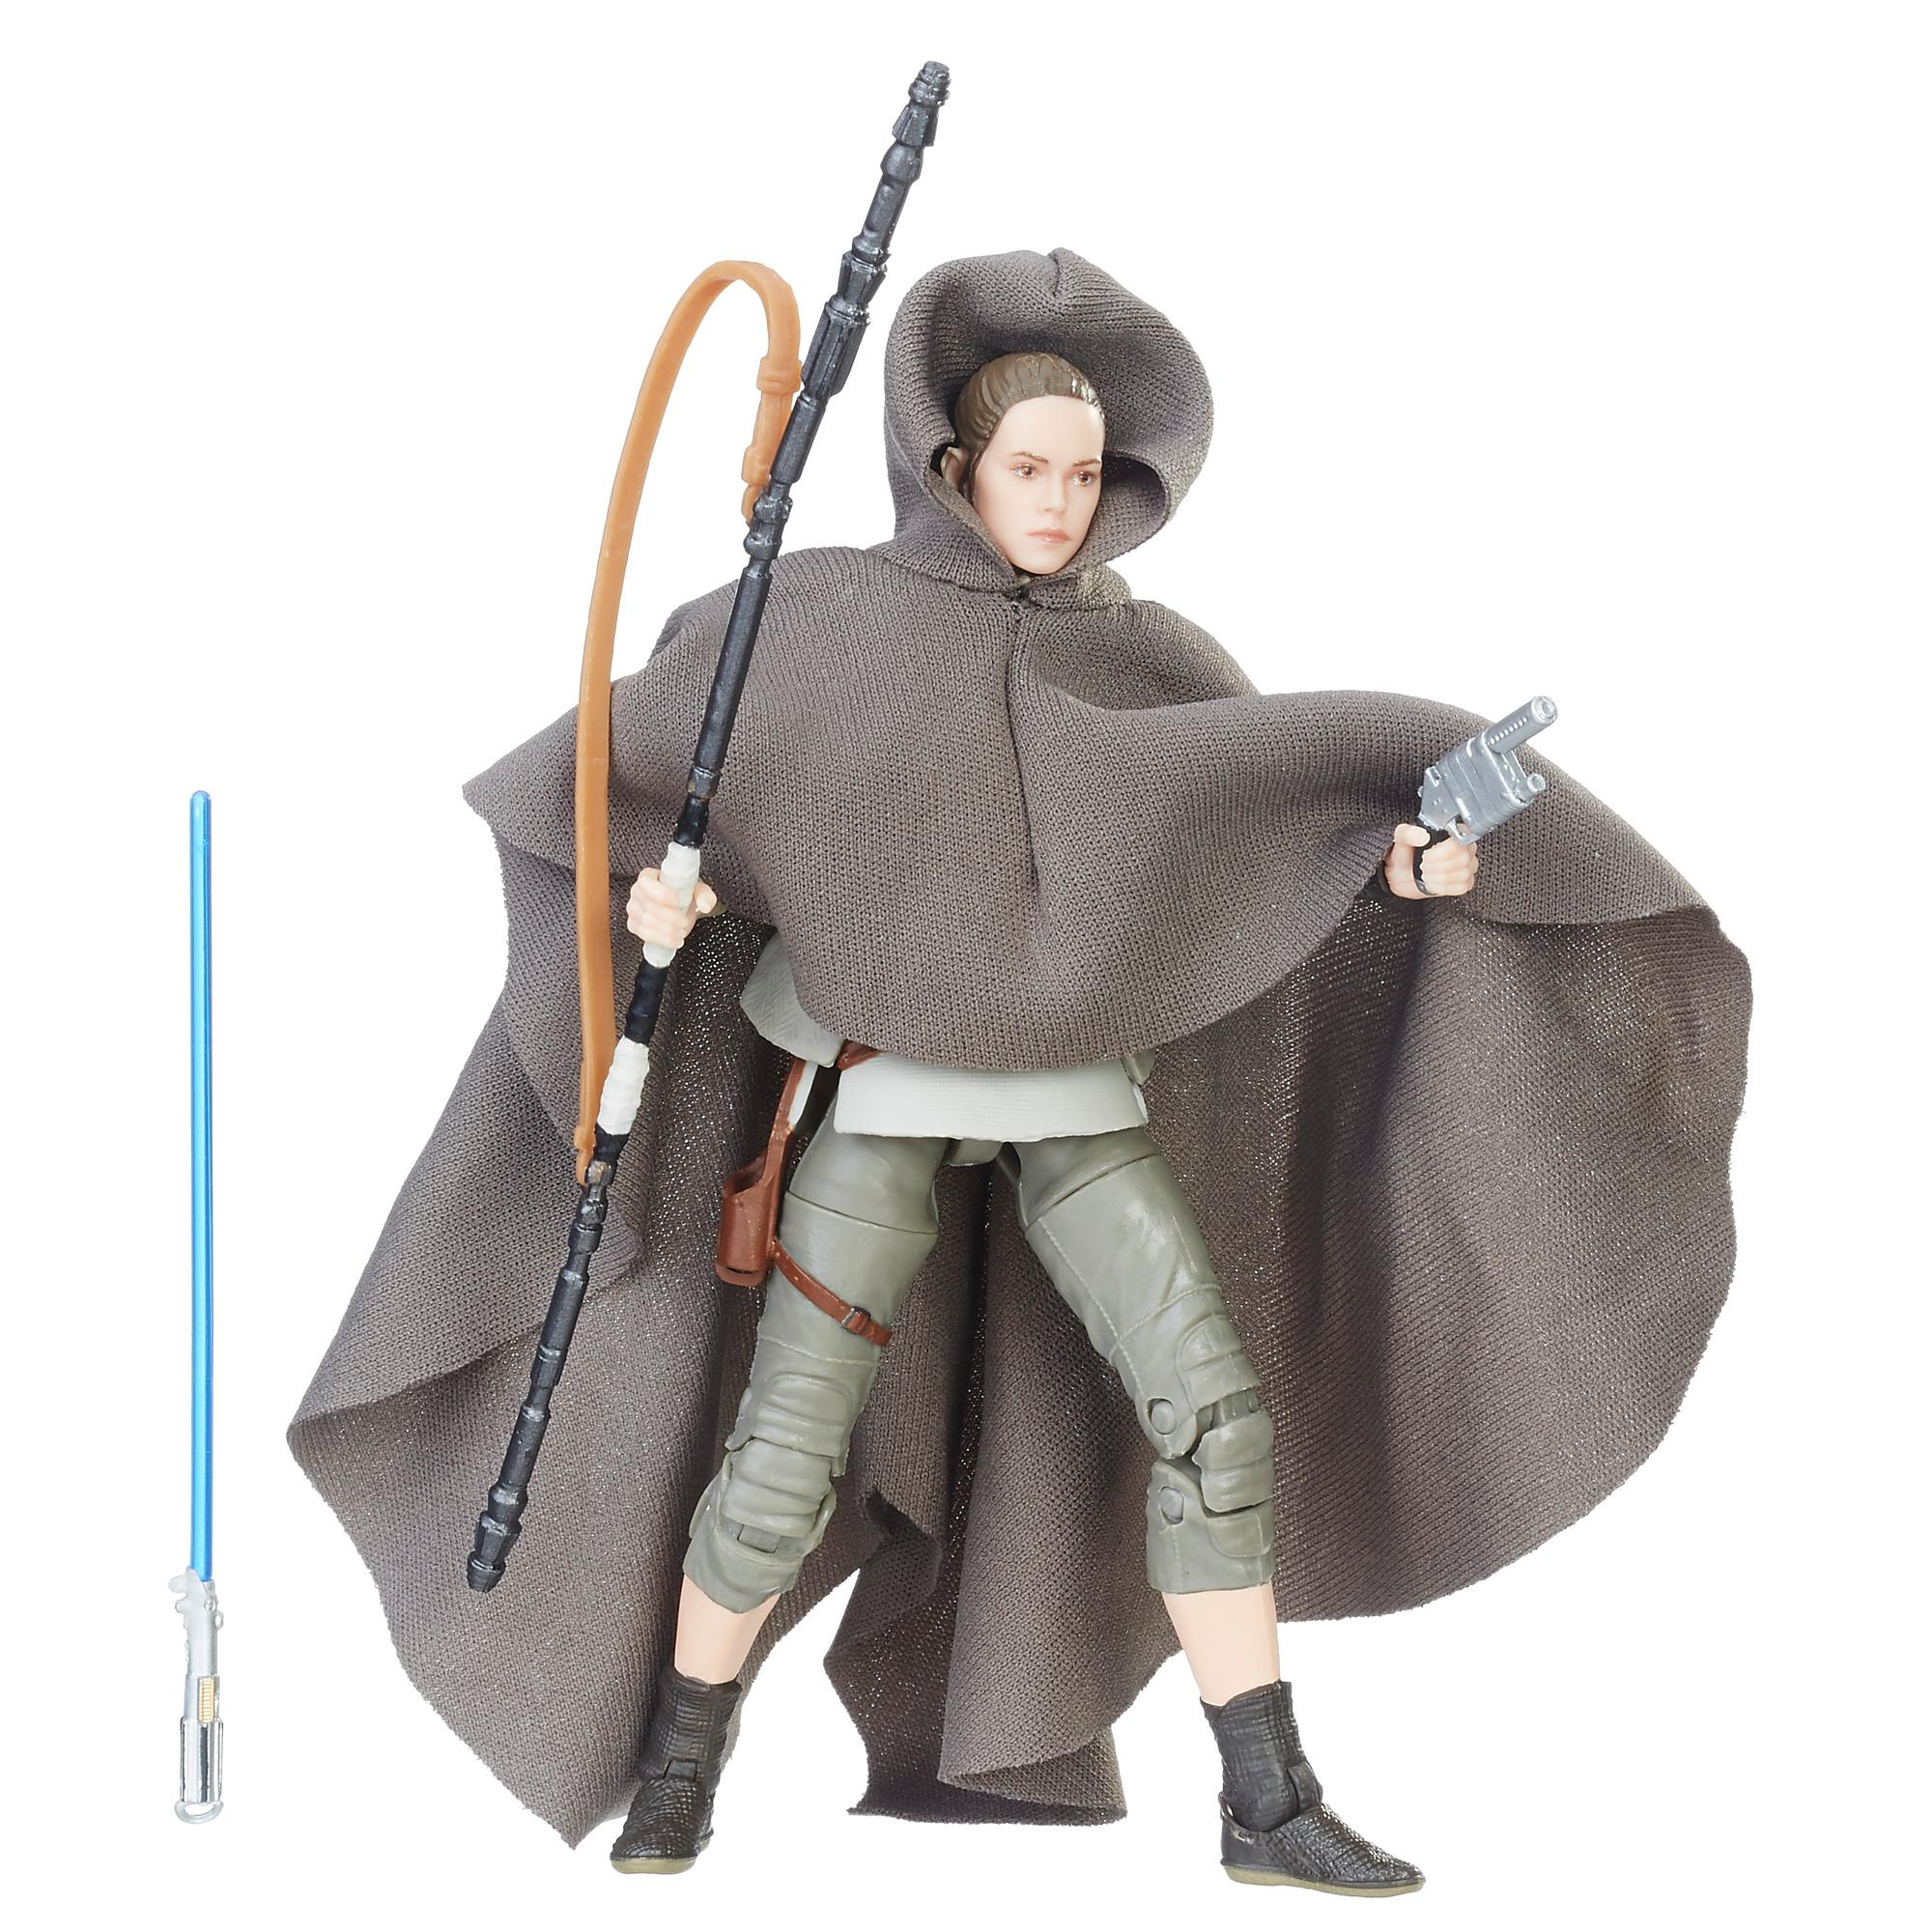 STAR WARS BLACK SERIES - E8 FIGURINE FOXTROT 1 BROWN